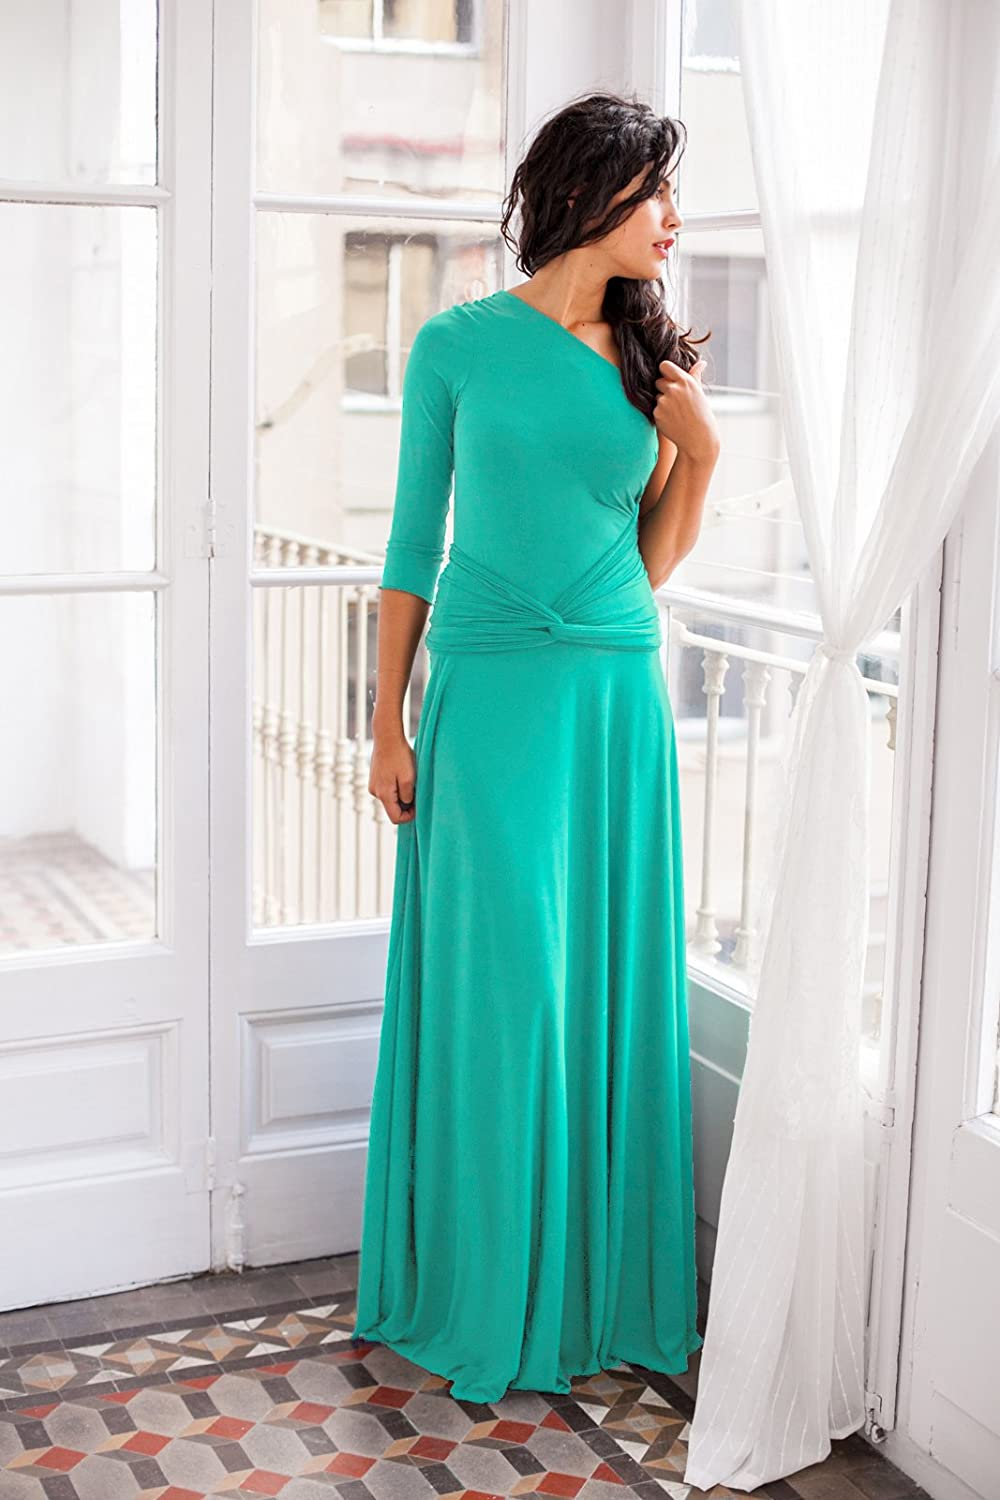 Amazon.com: Wedding guest dress, light turquoise dress with sleeves, long light turquoise dress, long sleeve dress, long turquoise wrap dress for event: ...